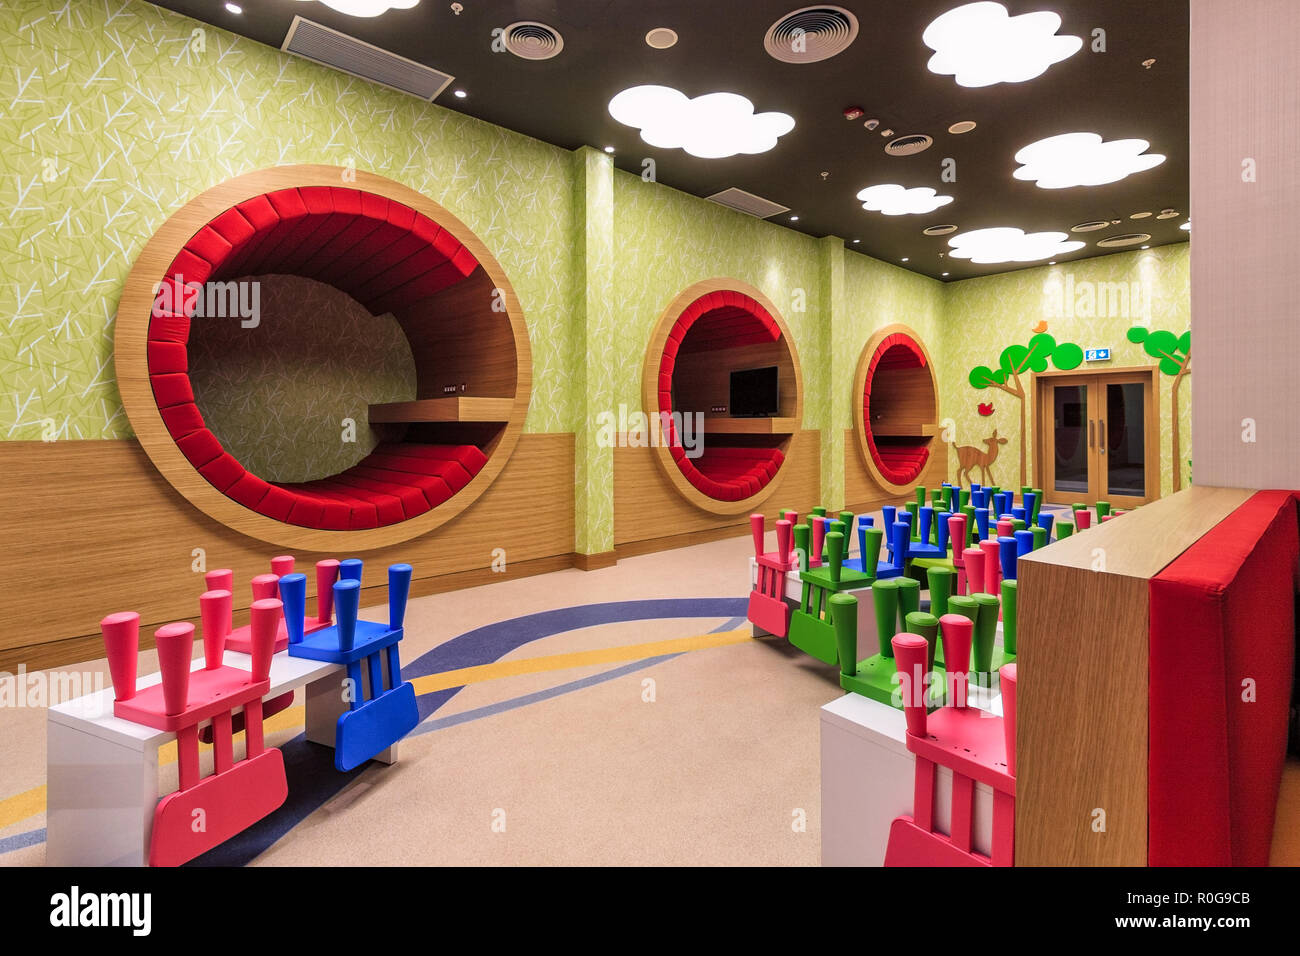 Sochi, Russia - March 5, 2014: Sochi Marriott Hotel nursery room has modern stylish colorful interior and welcomes children of different ages - Stock Image